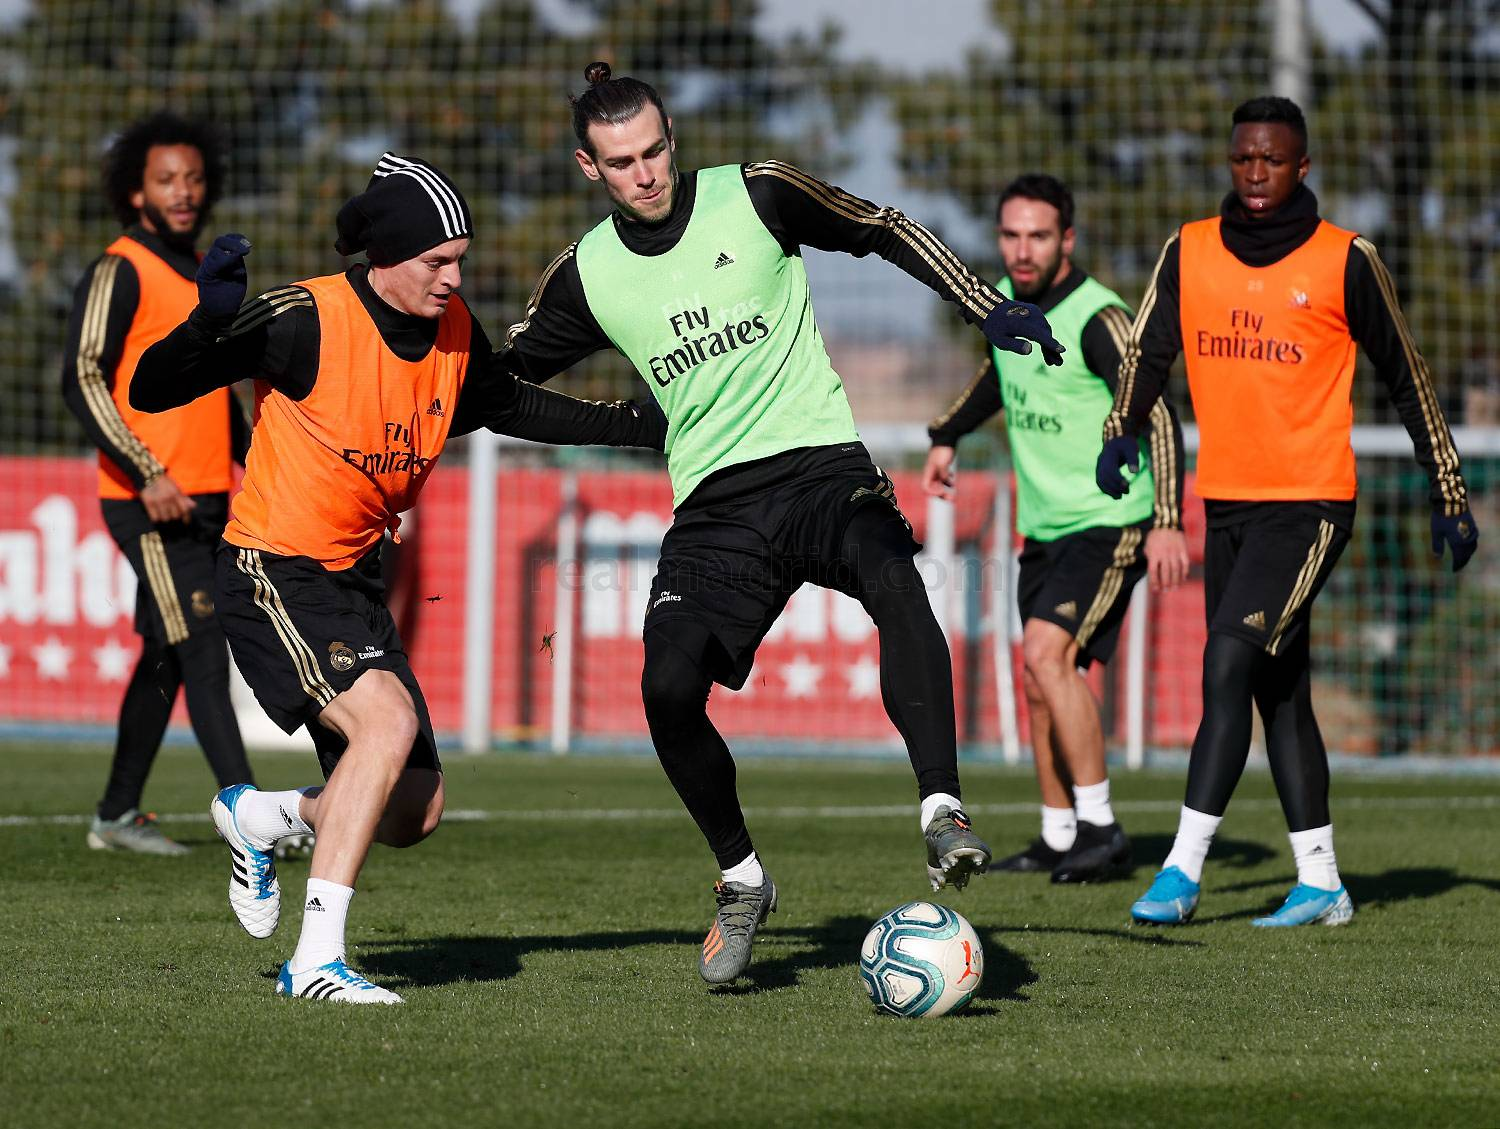 Real Madrid - Entrenamiento del Real Madrid  - 02-01-2020